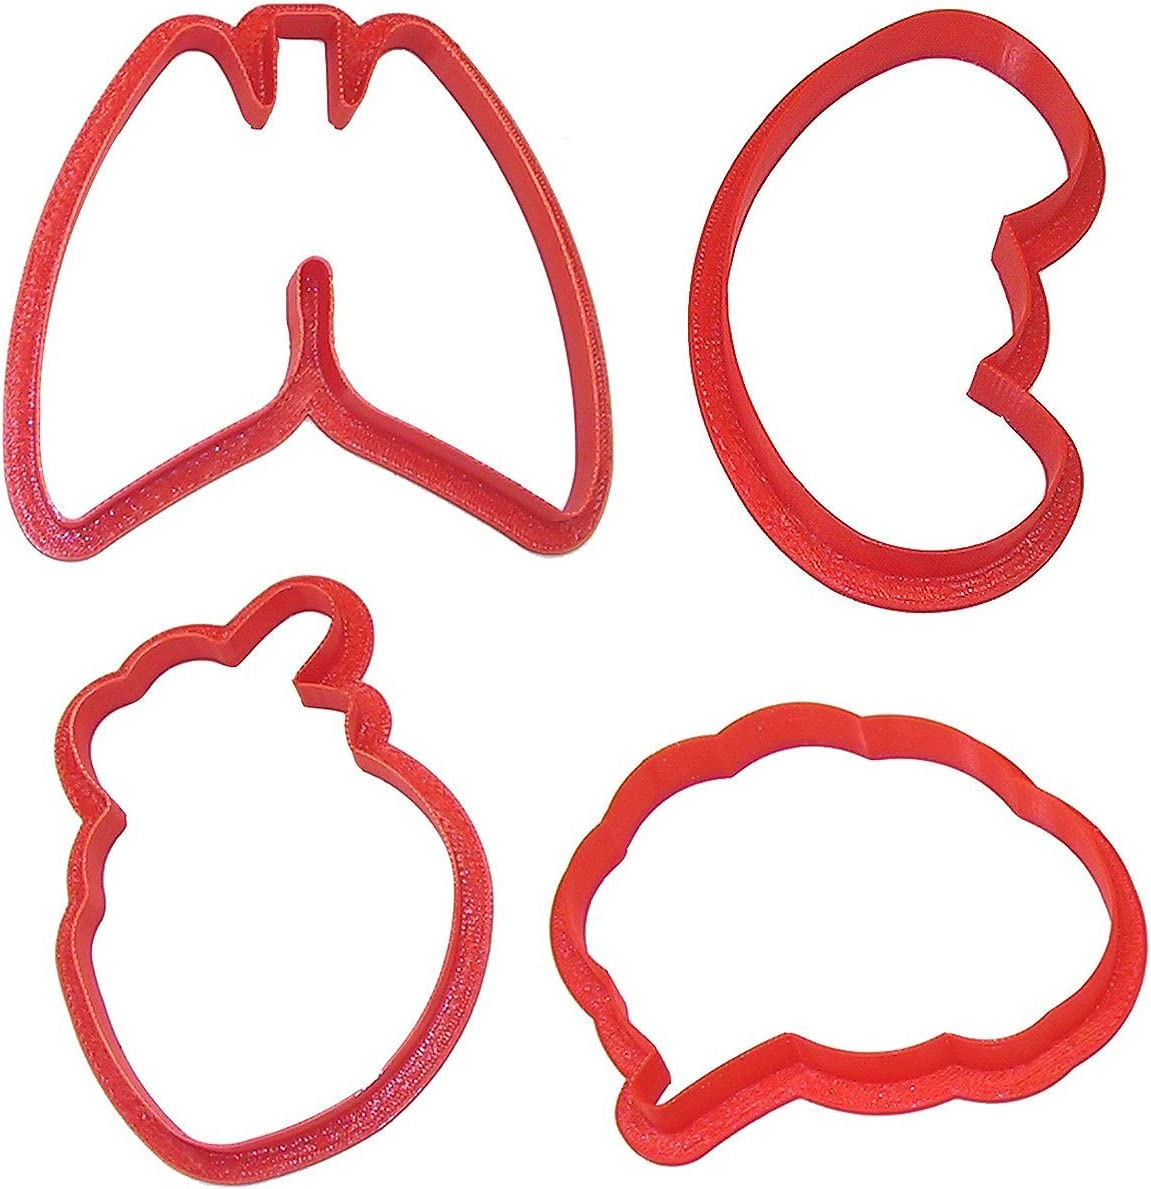 Anatomical Body Parts Cookie Cutter 4 Pc Set – Kidney, Heart, Lungs, Brain Cookie Cutters Hand Made in the USA from Tin Plated Steel